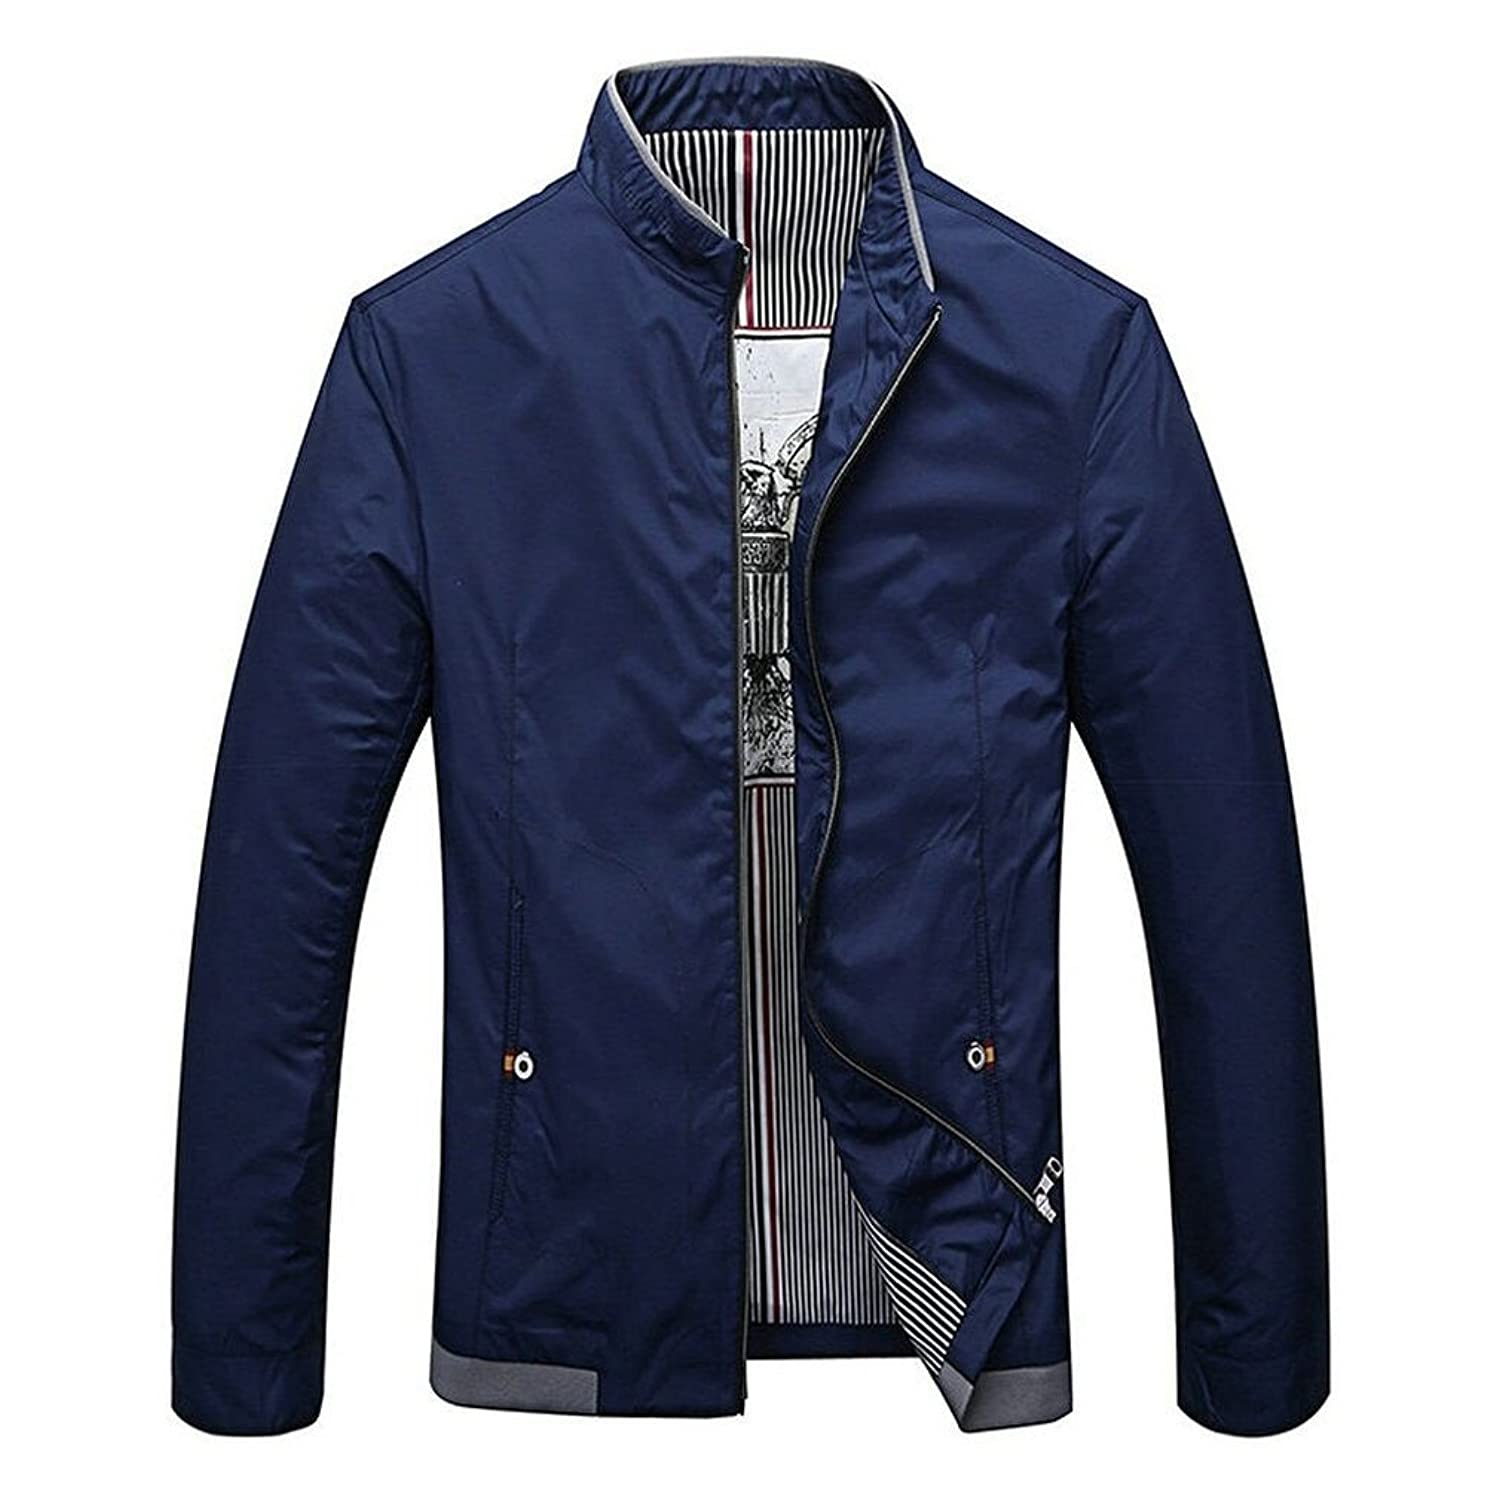 New designs 2016 Men's Casual Jacket New and Fashion for everyday